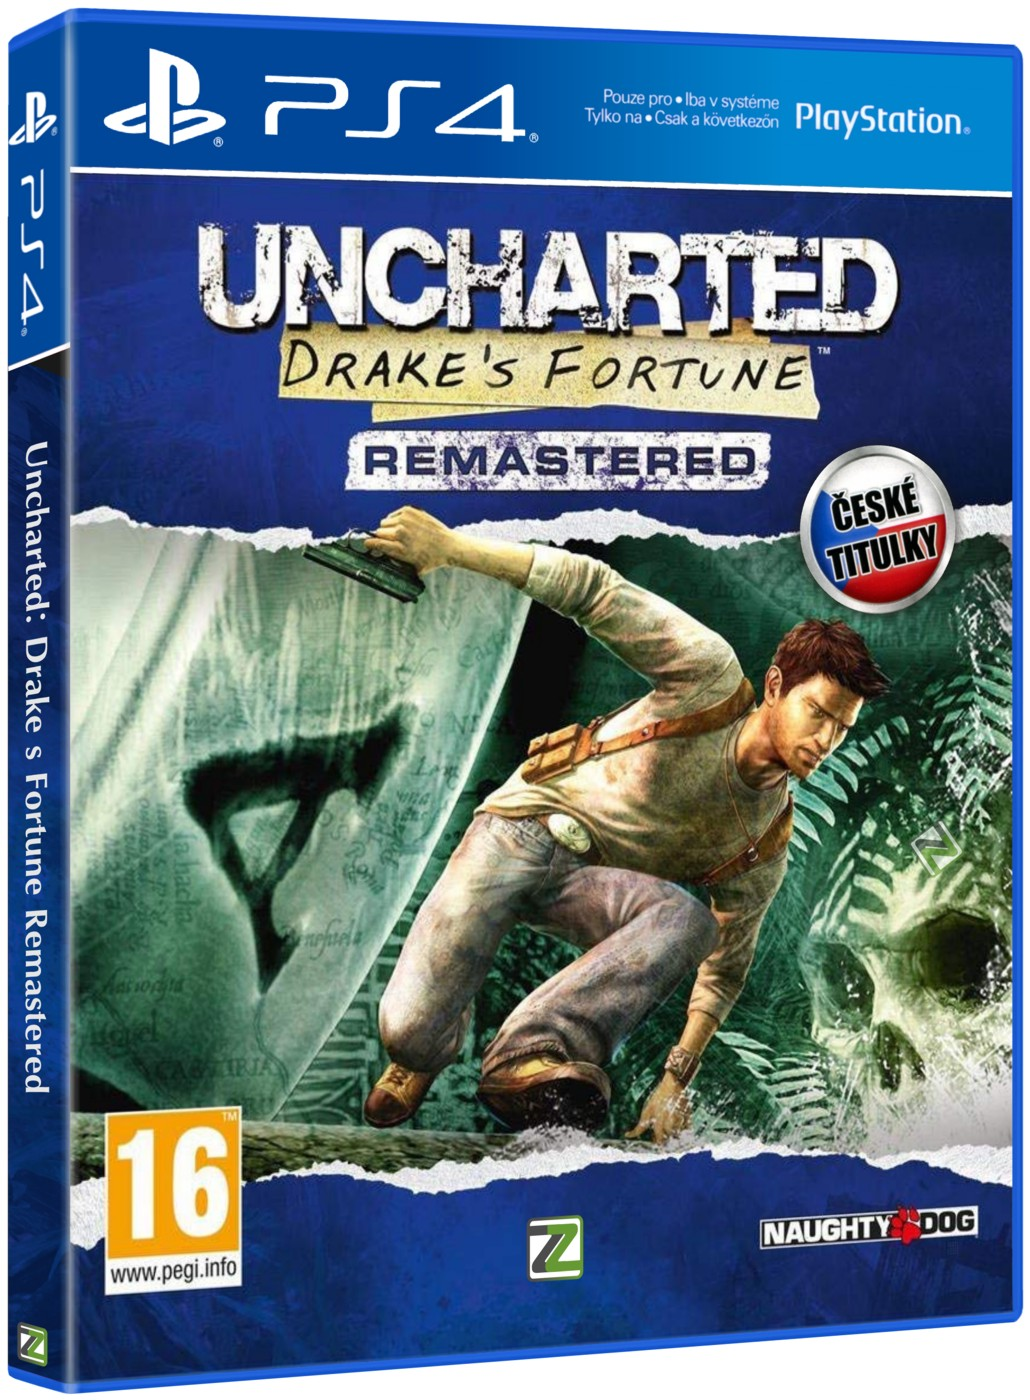 UNCHARTED: DRAKE'S FORTUNE REMASTERED - PS4